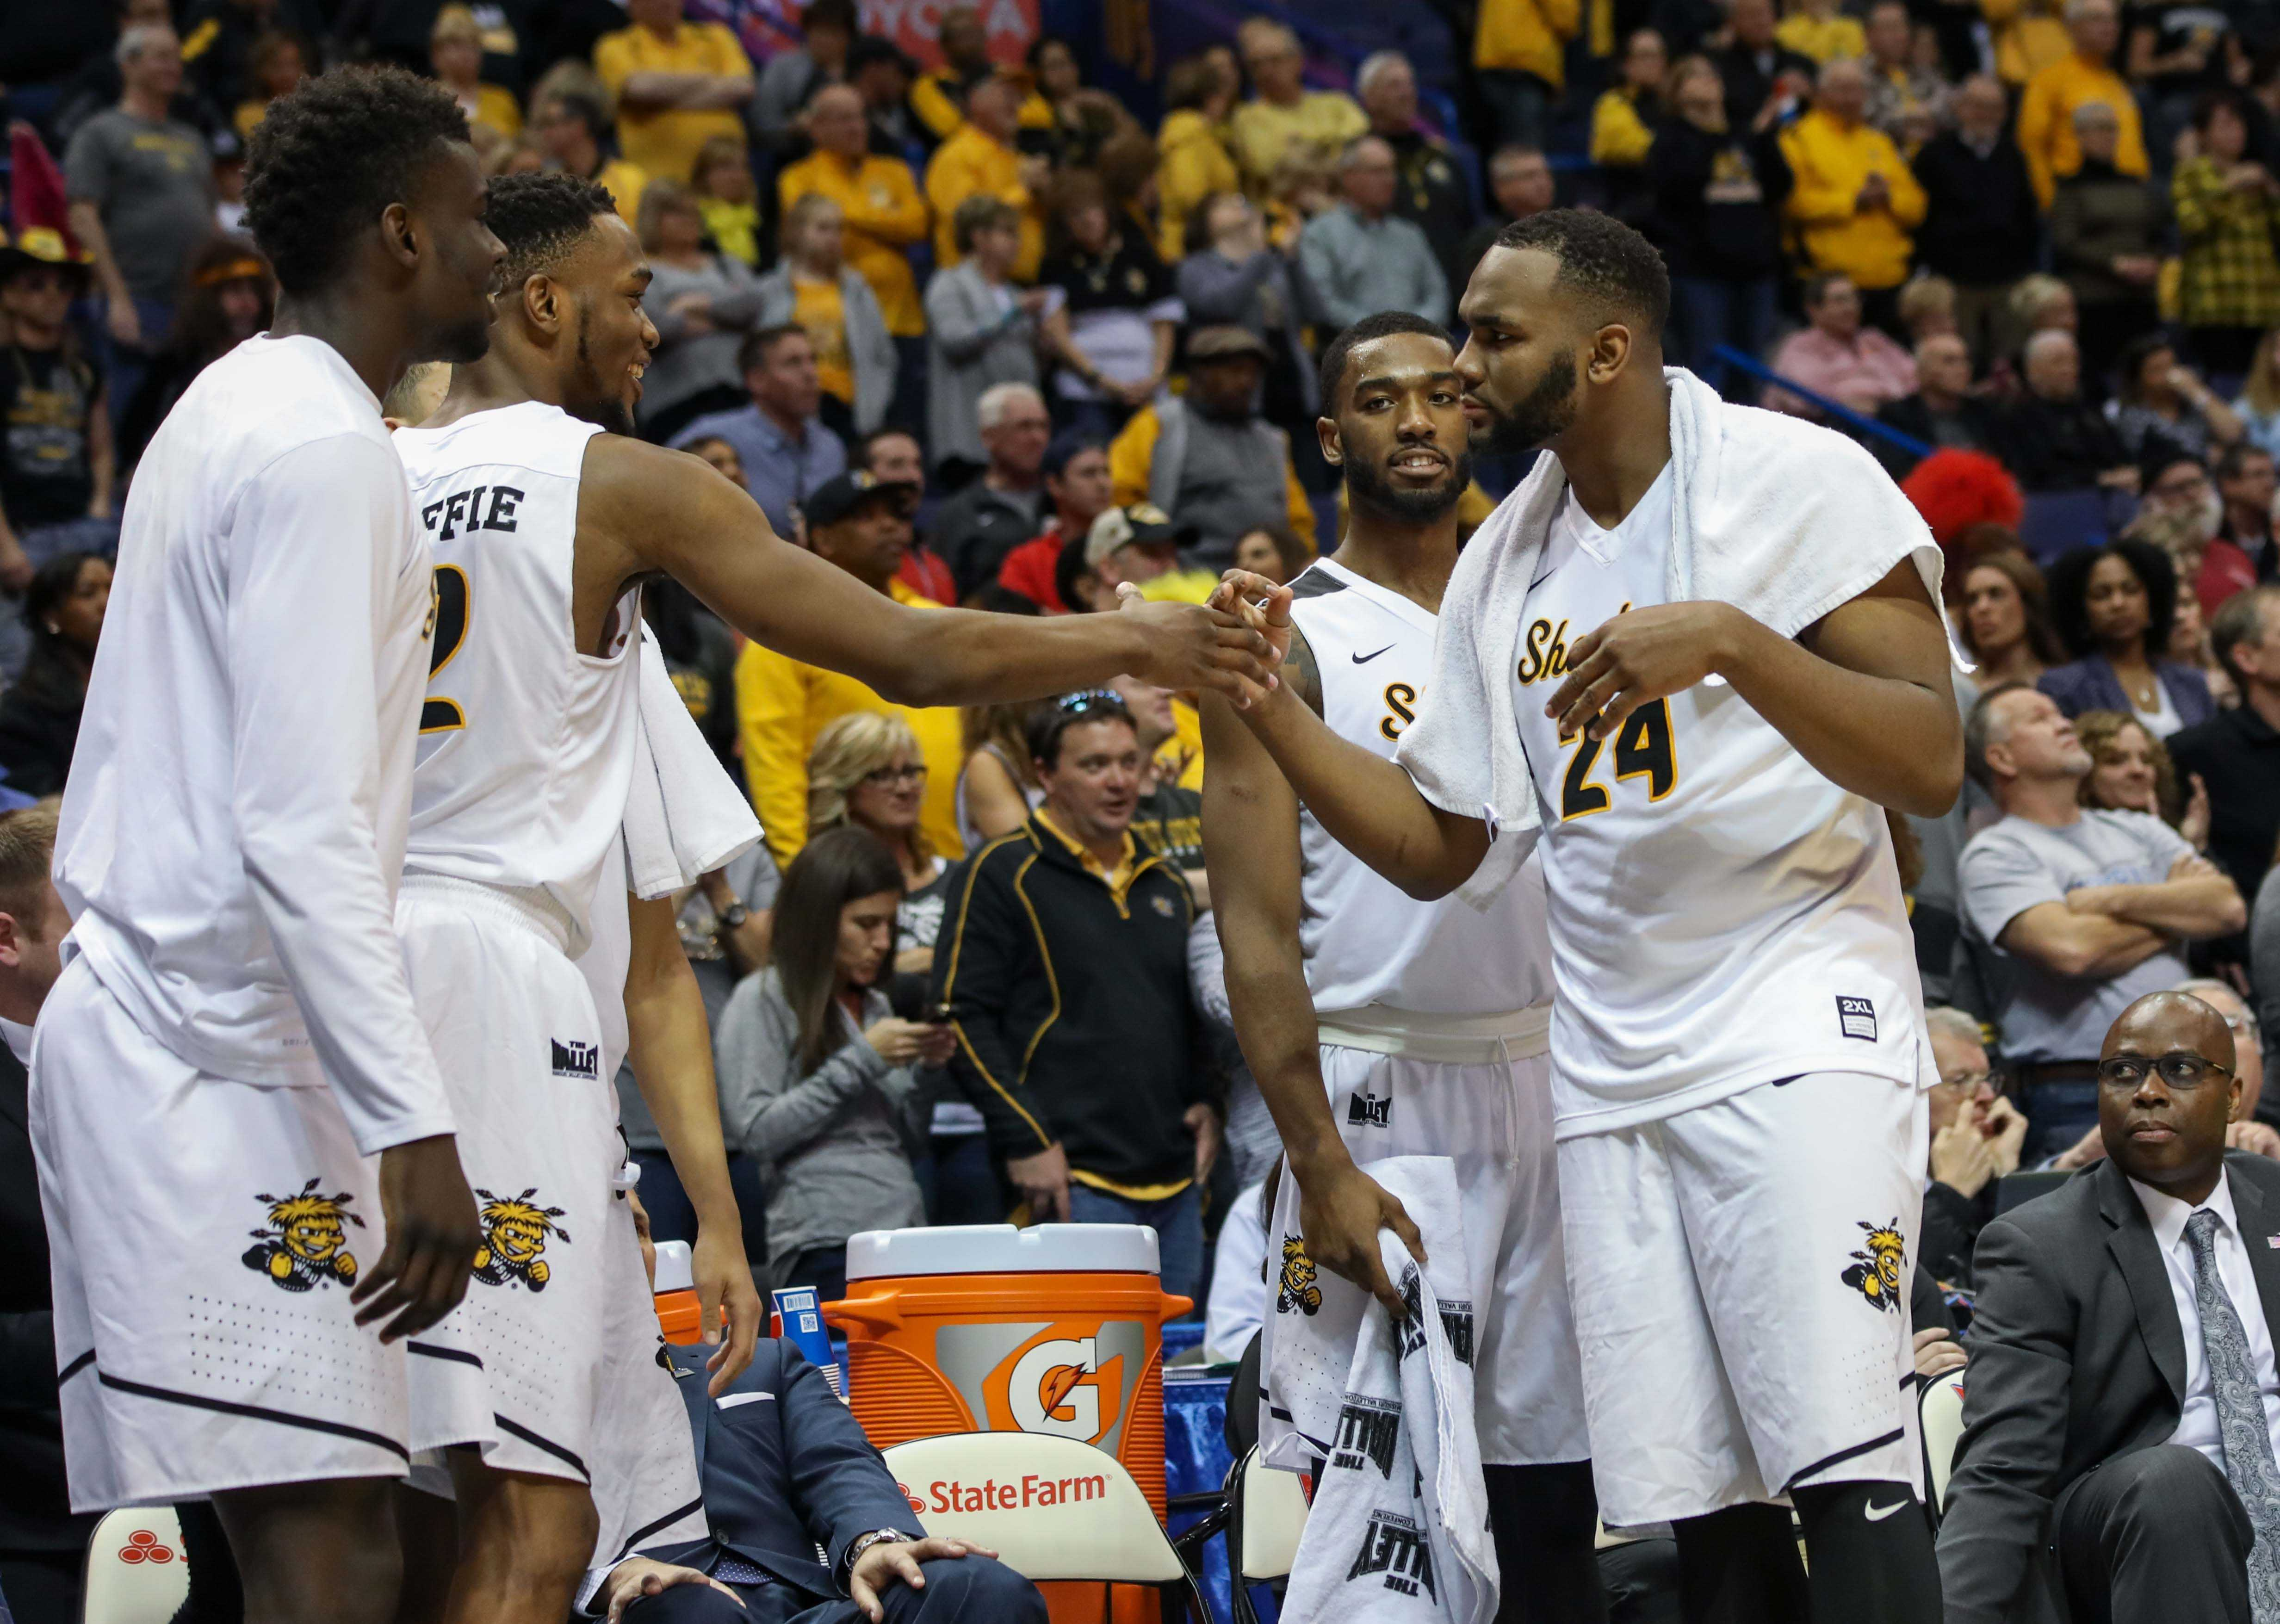 Wichita State's Markis McDuffie (32) and Shaquille Morris (24) celebrate the Shocker win.